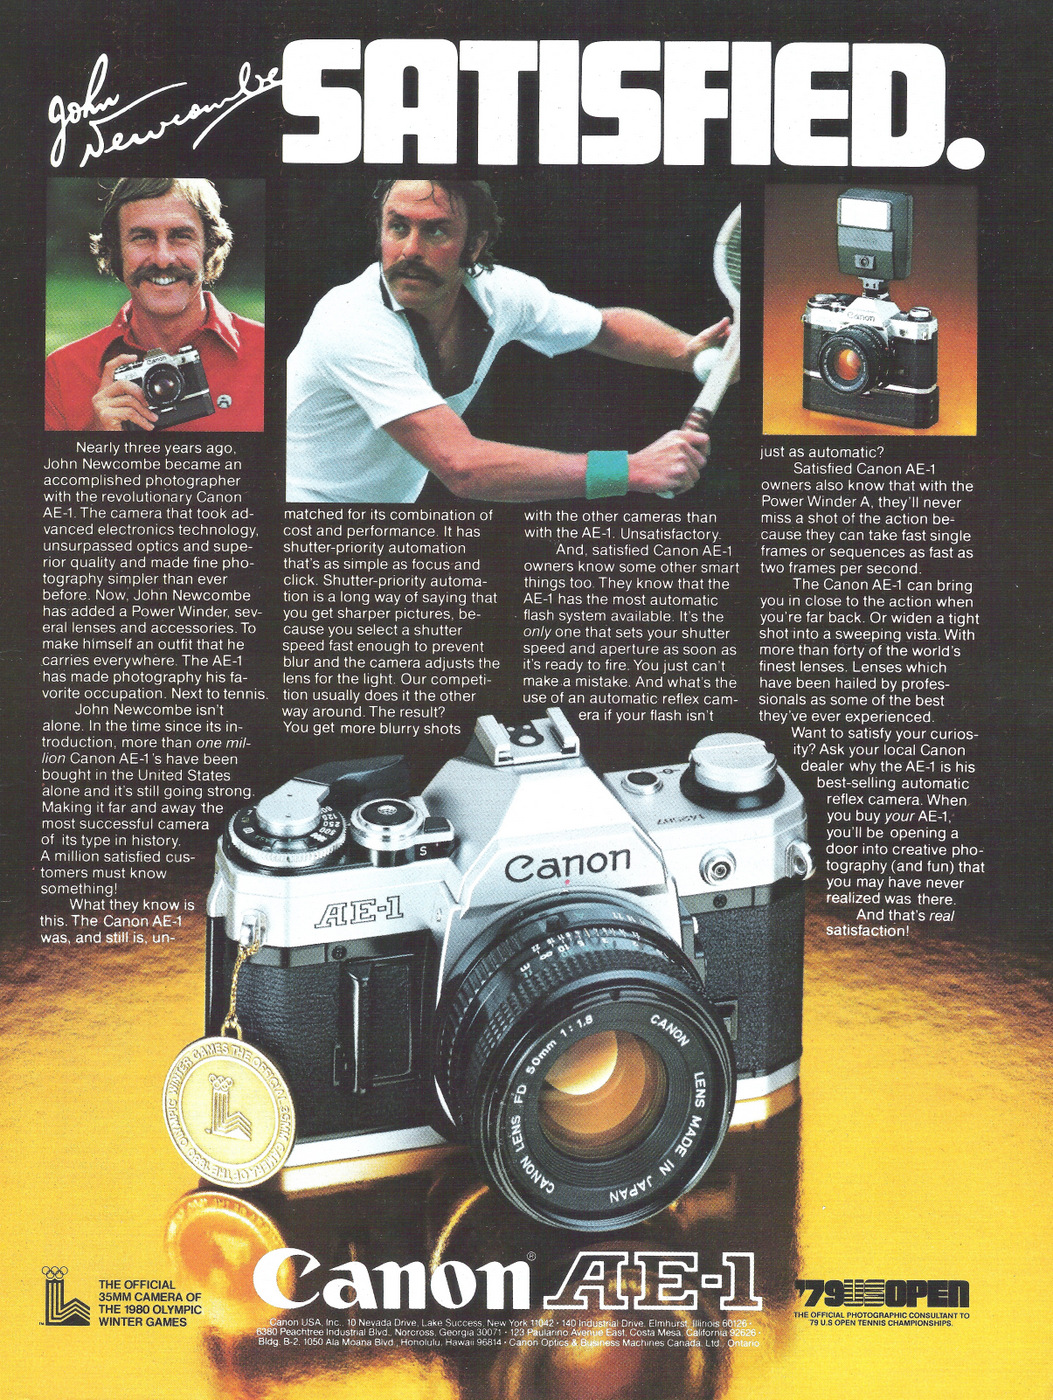 Nikon versus Canon: A Story Of Technology Change